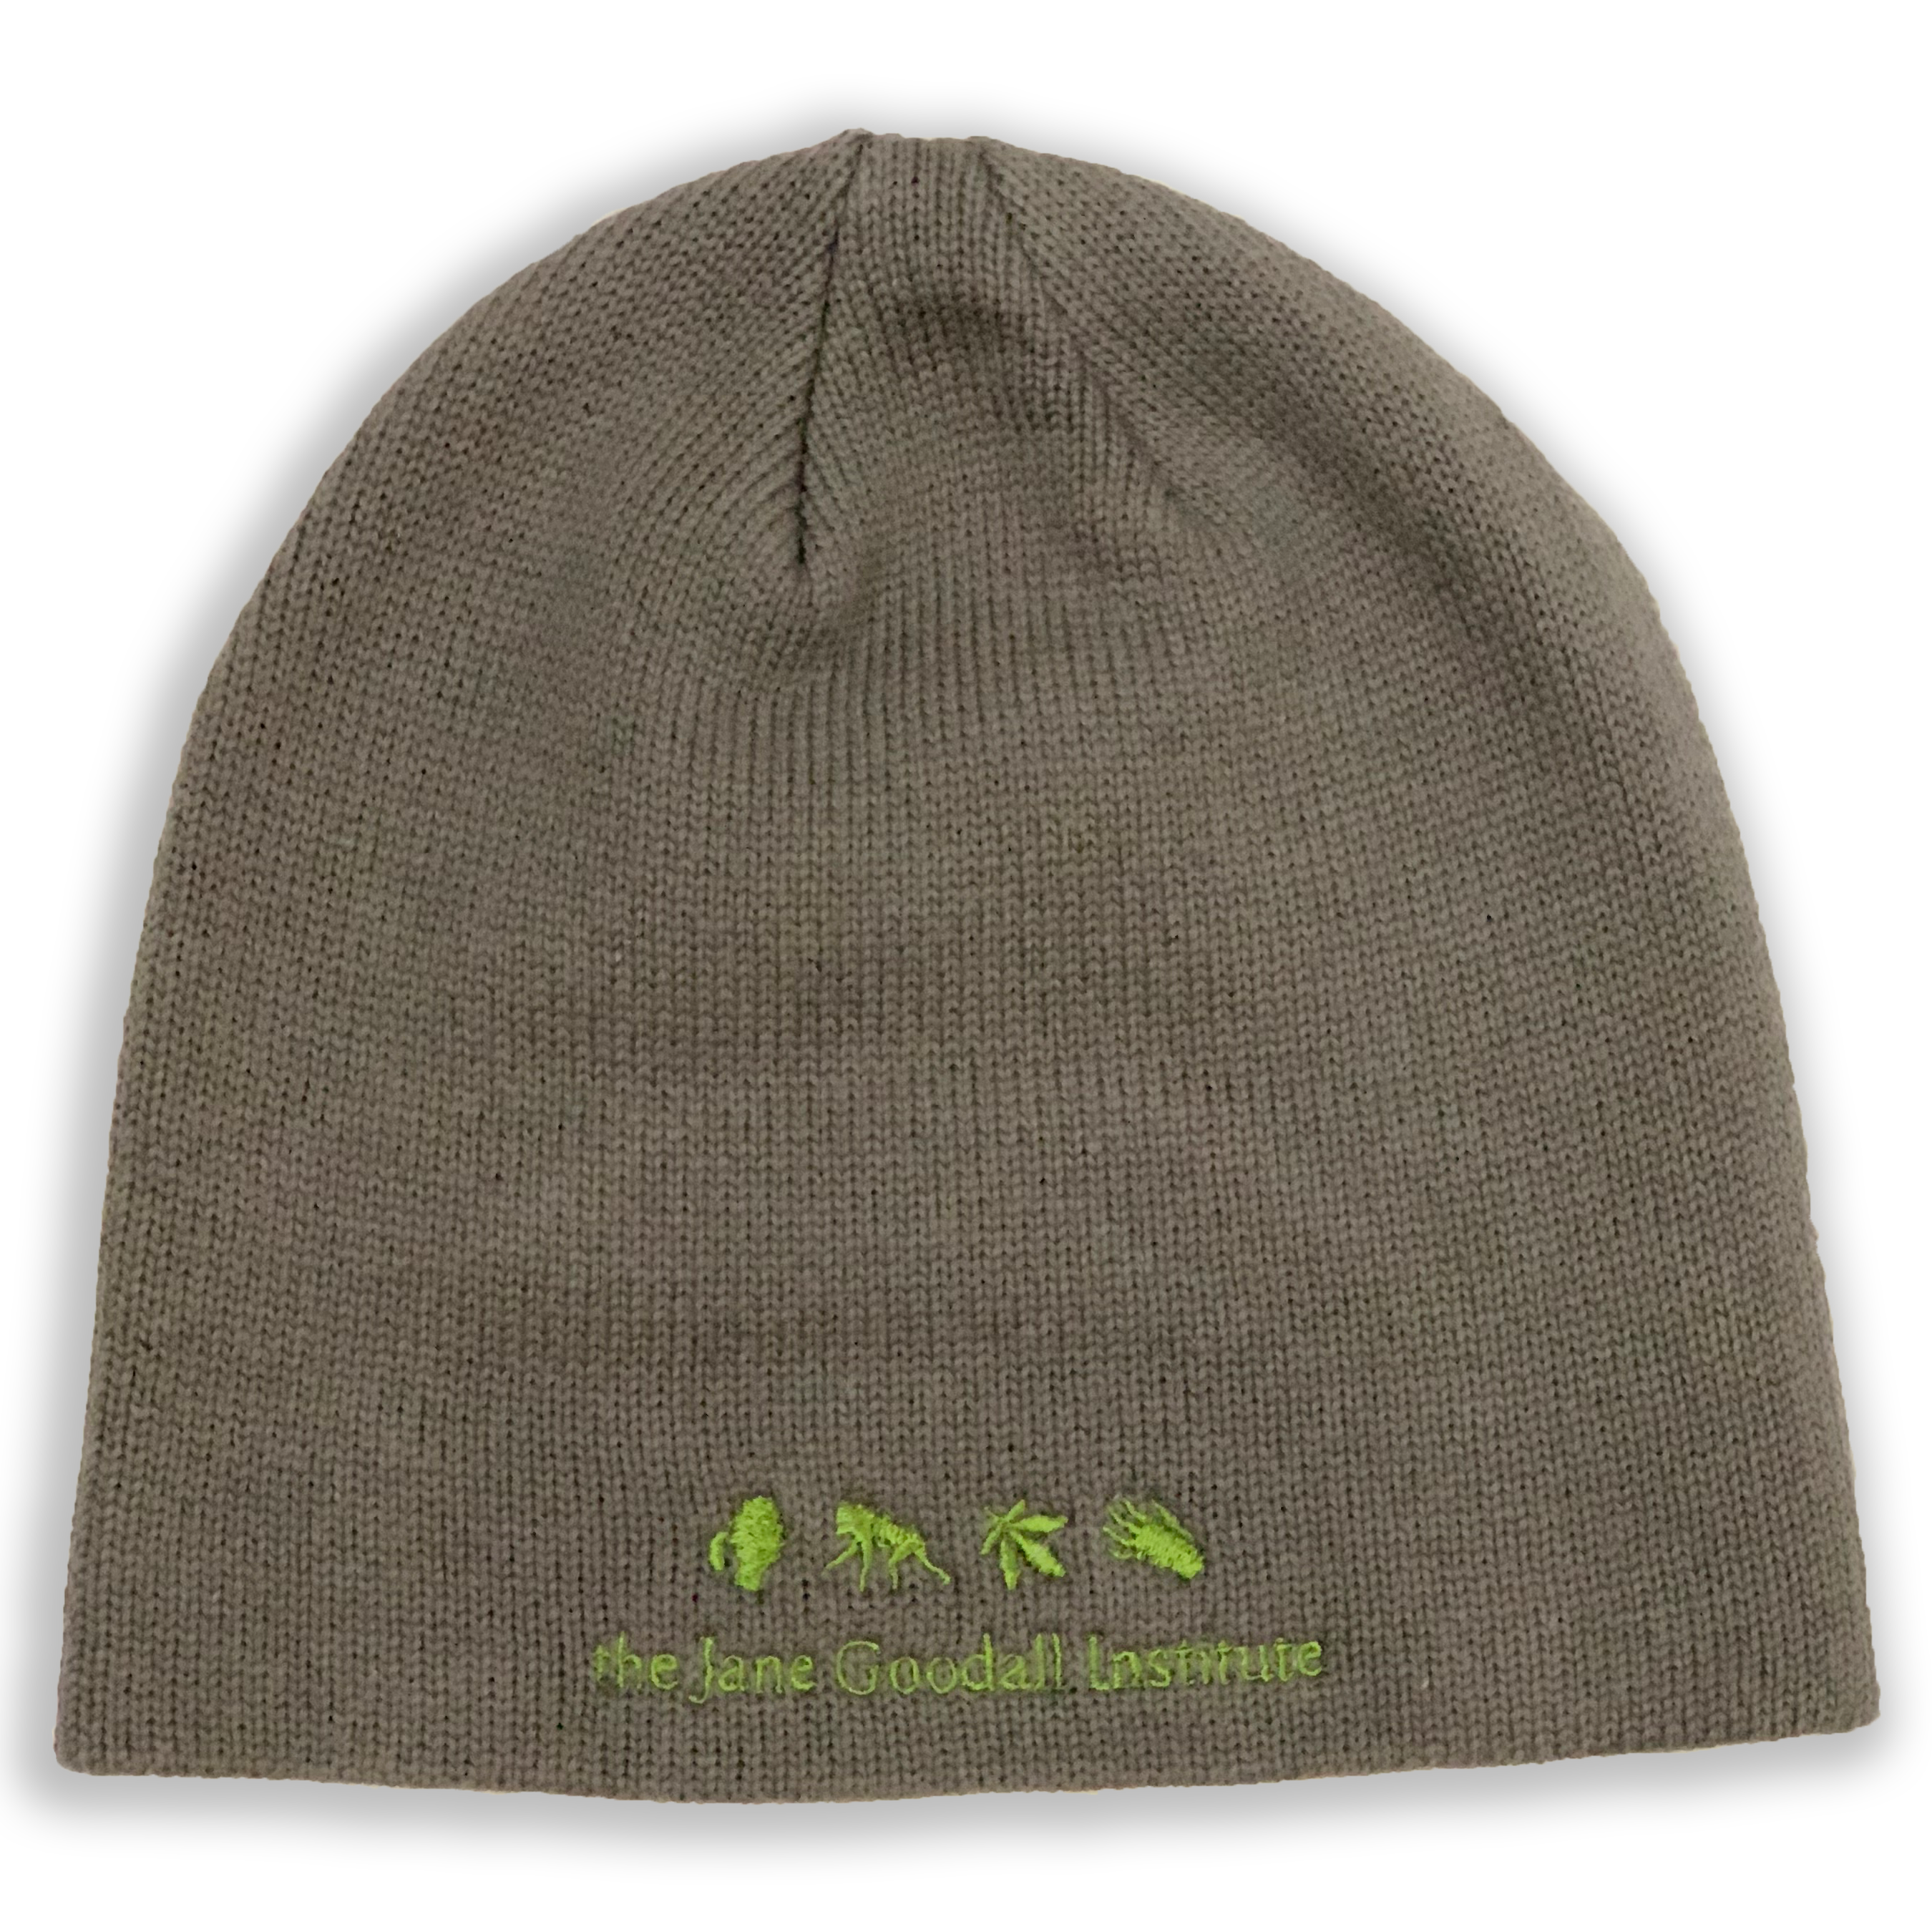 Jane Goodall Institute Beanies